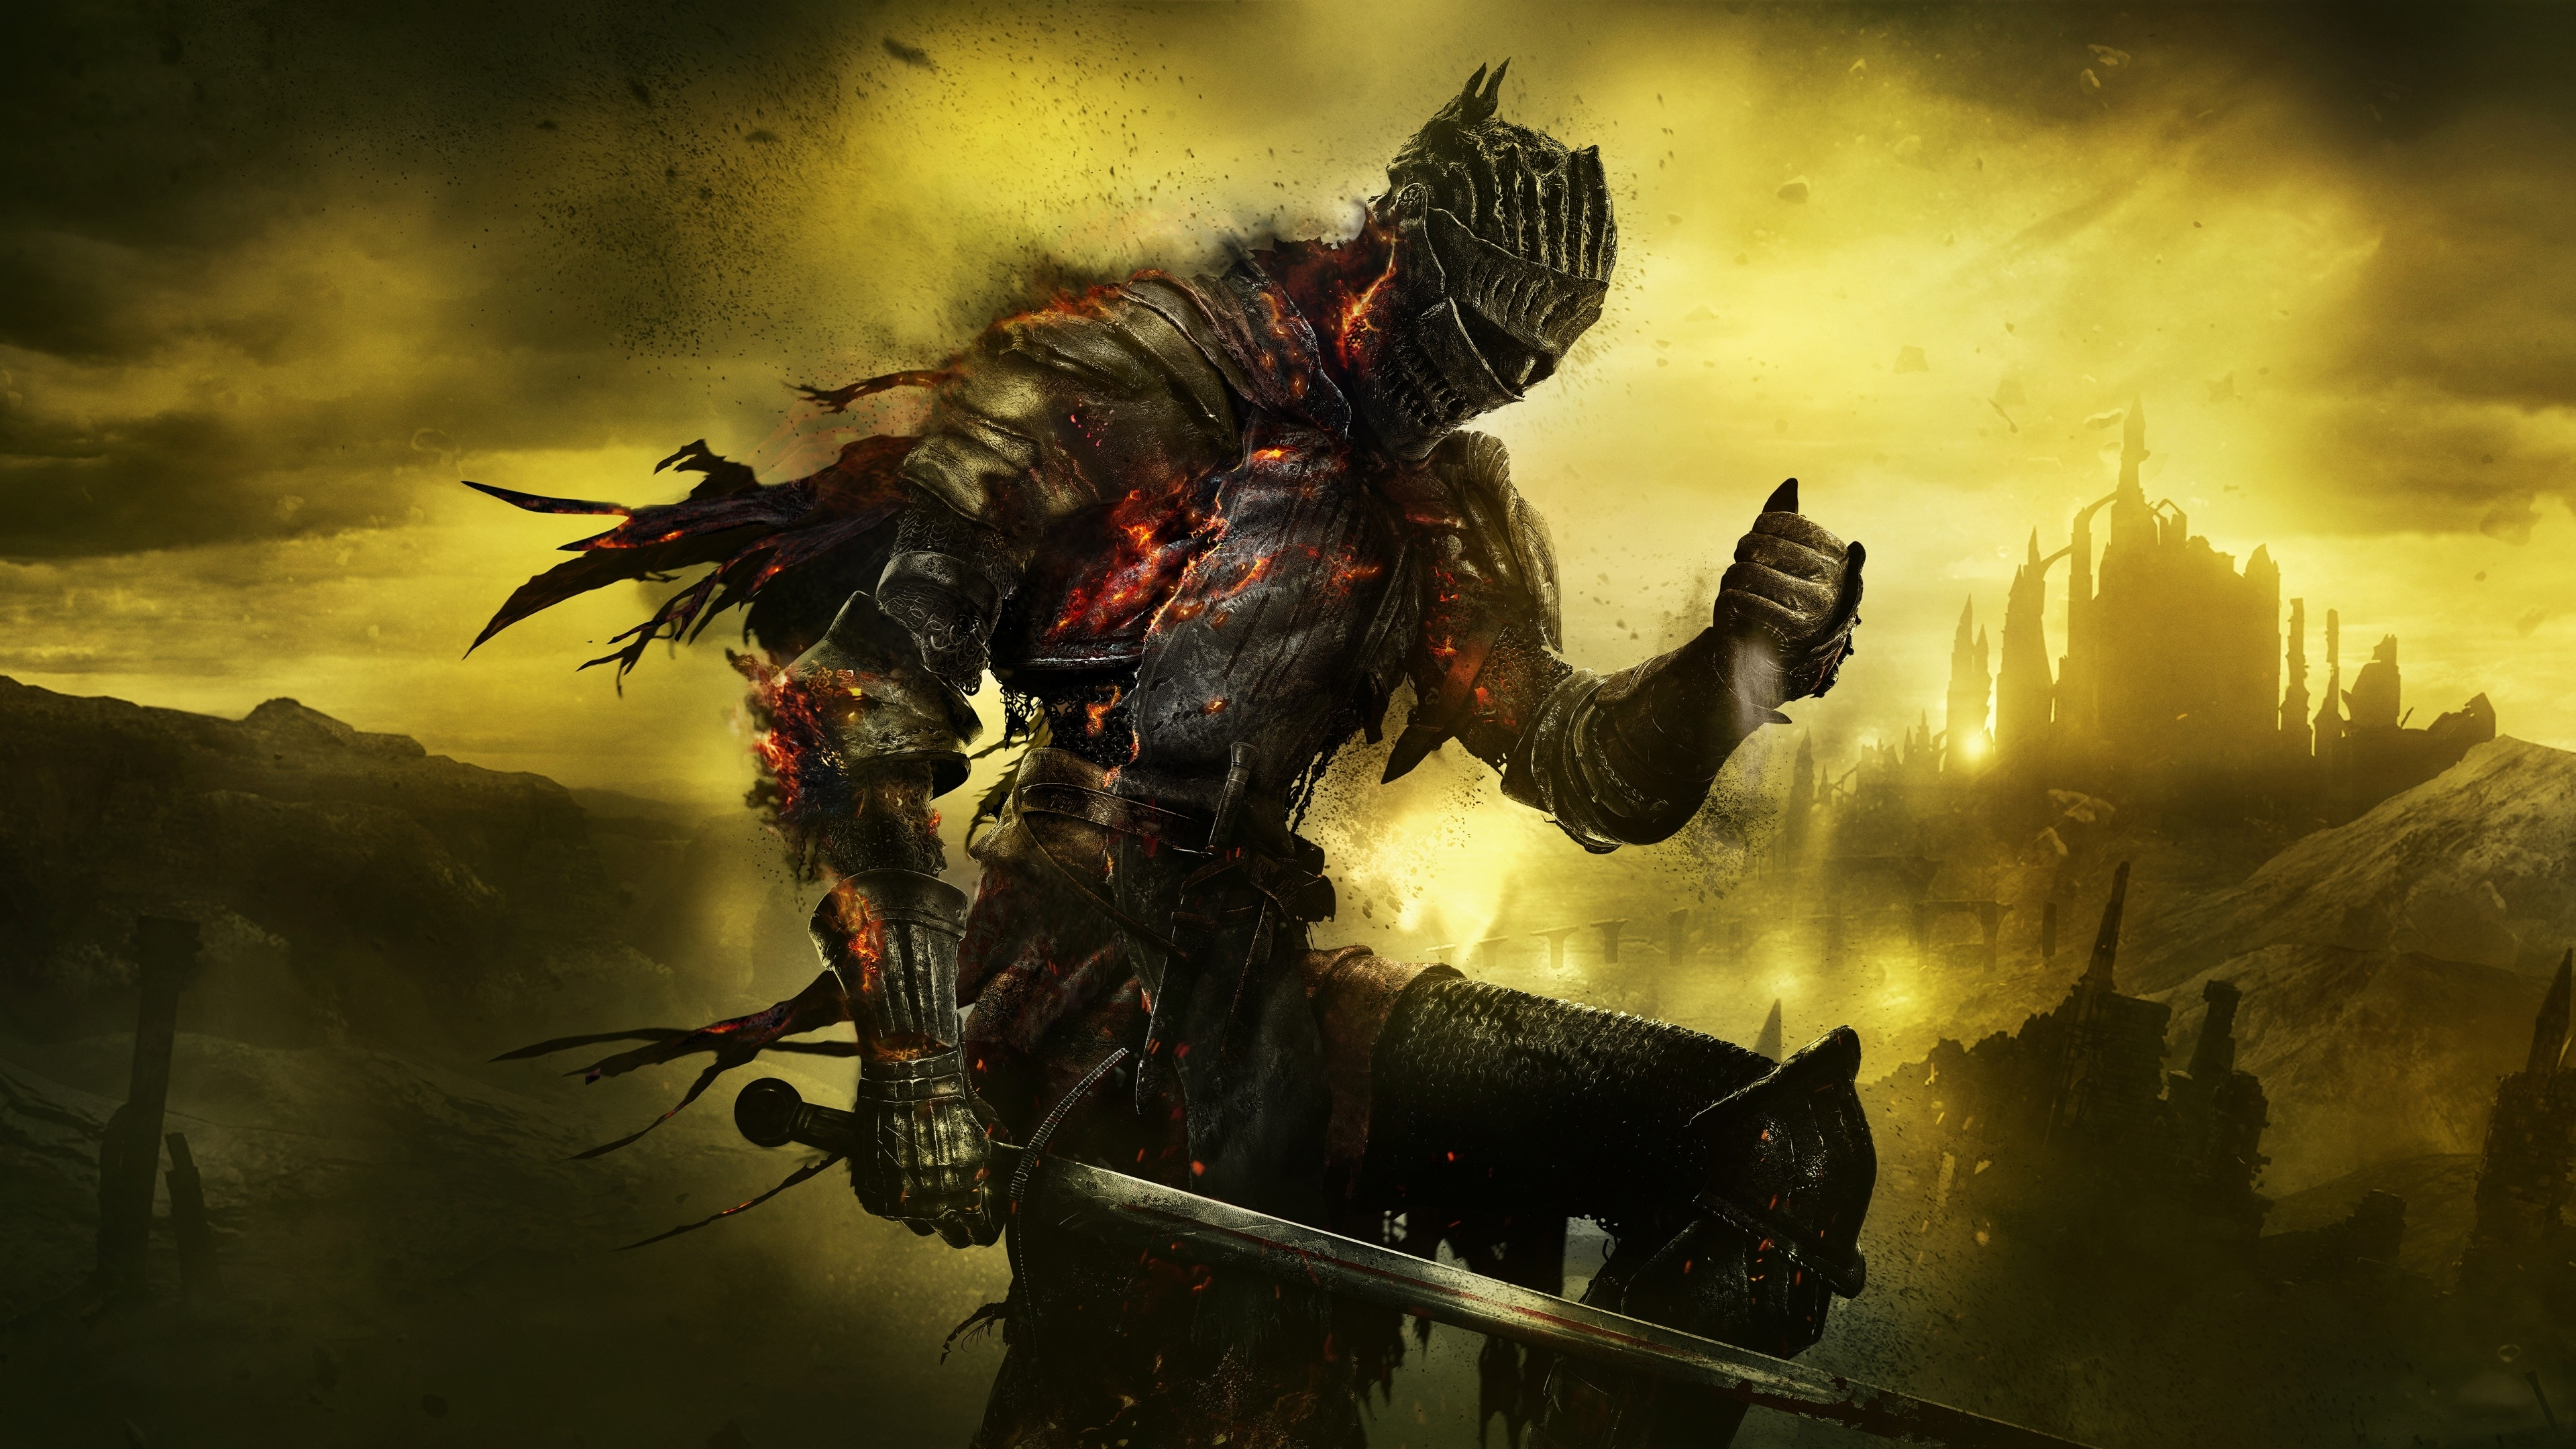 wallpaper dark souls iii, key art, 5k, games, #11365